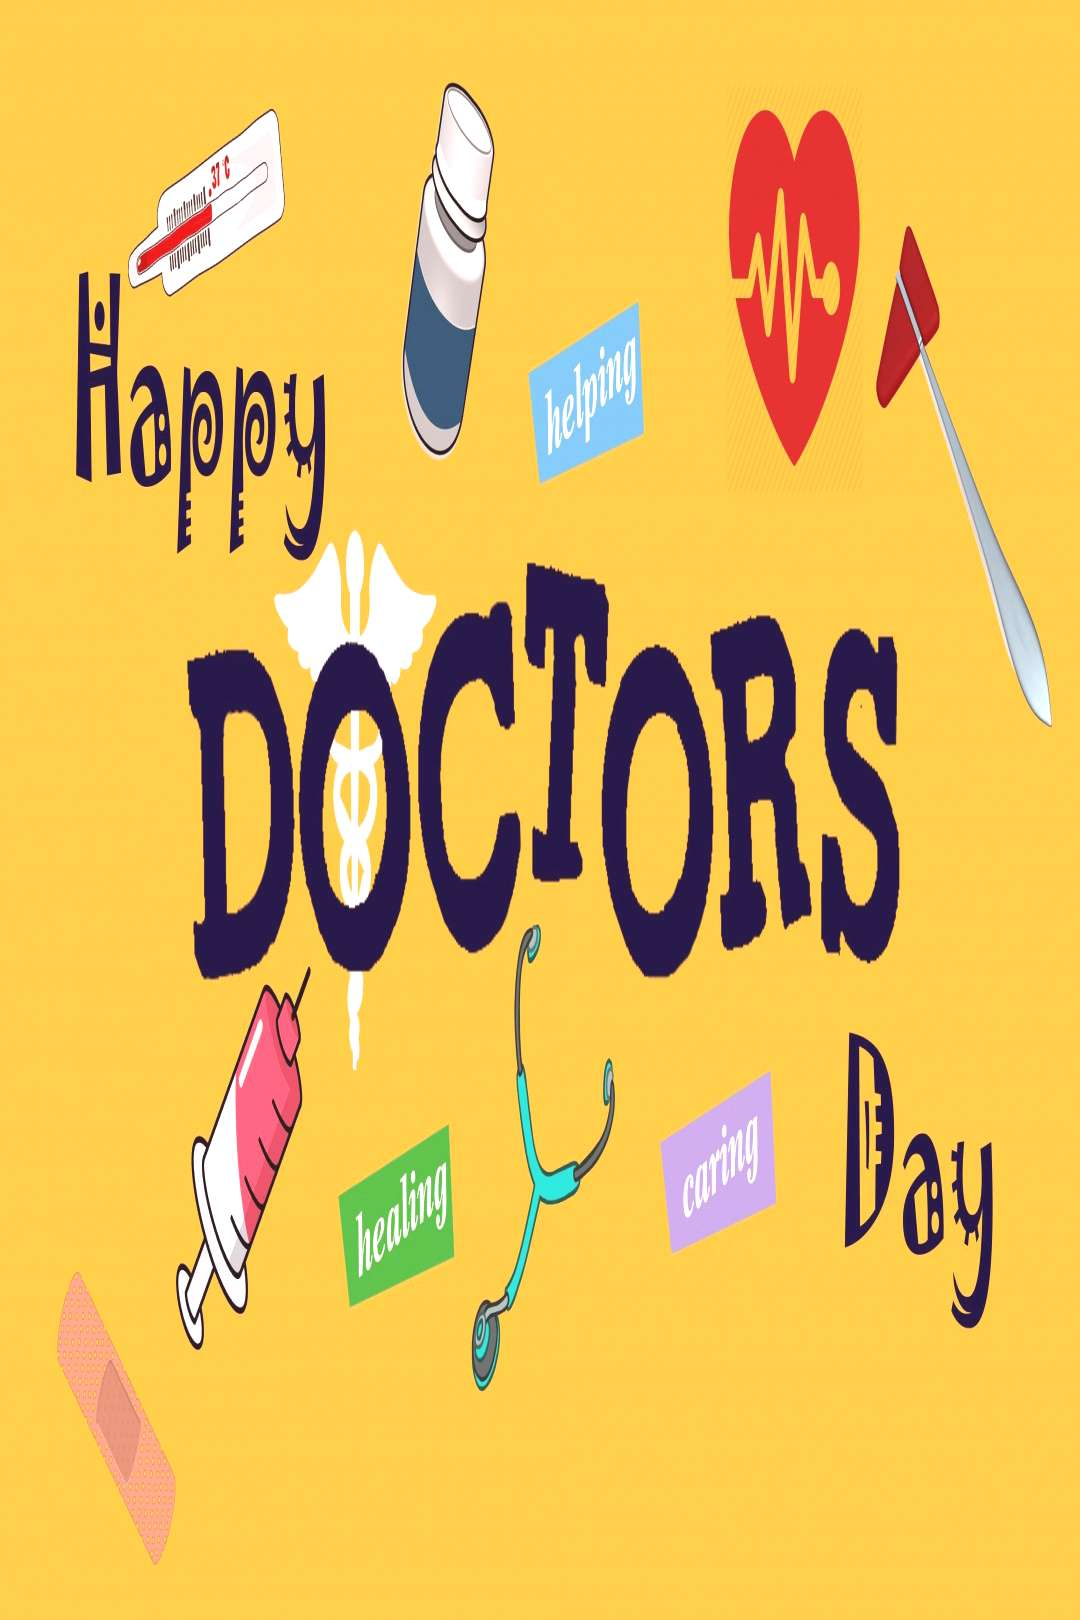 Happy Doctors Day Wishes _ Happy Doctors Day happy doctors day wishes * happy doctors day _ happy d